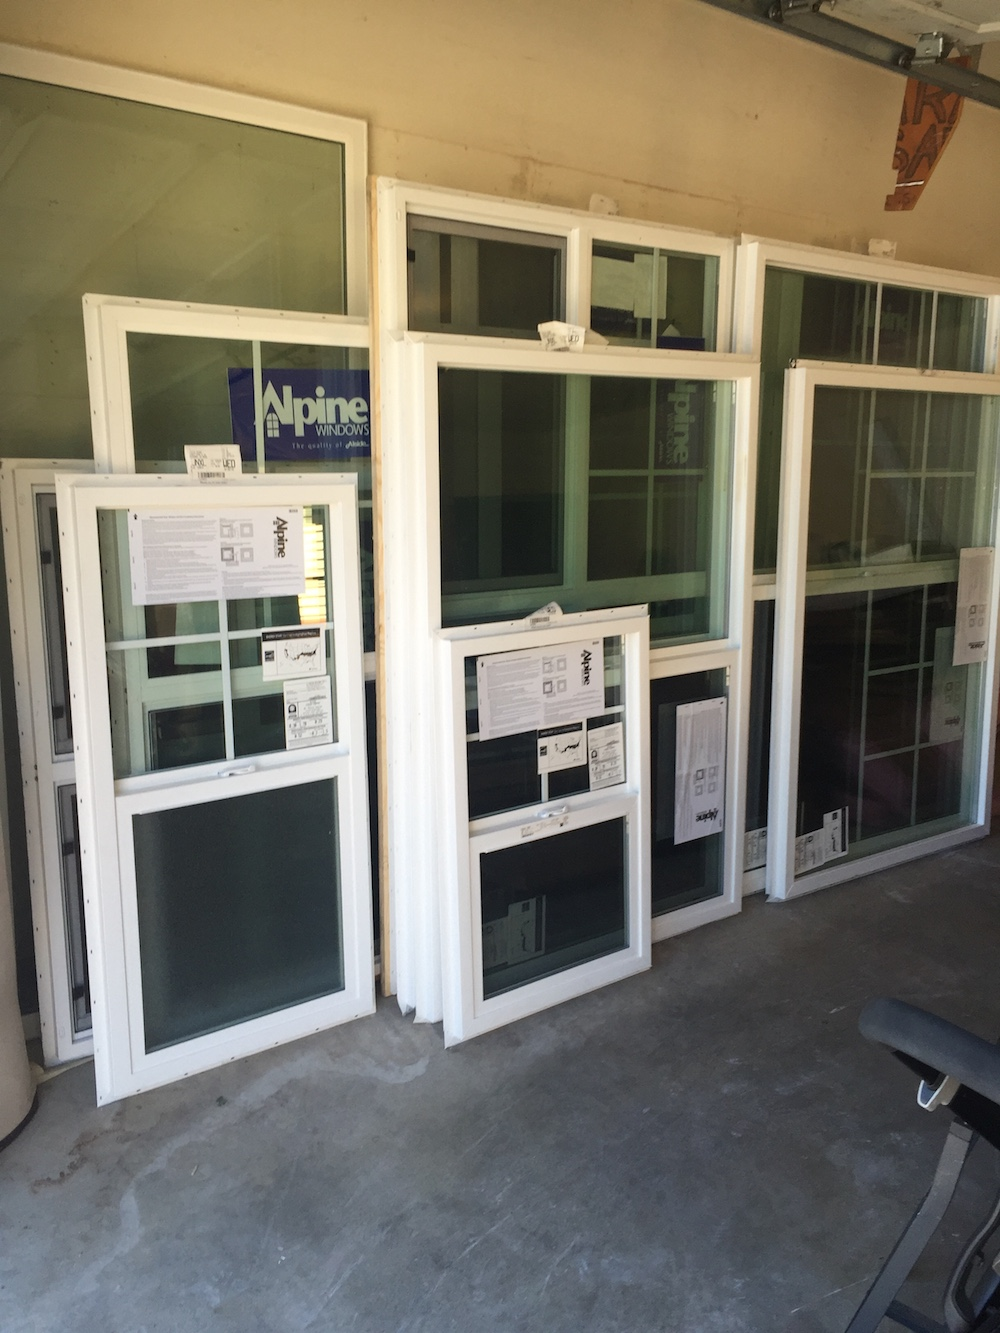 New windows for the house!